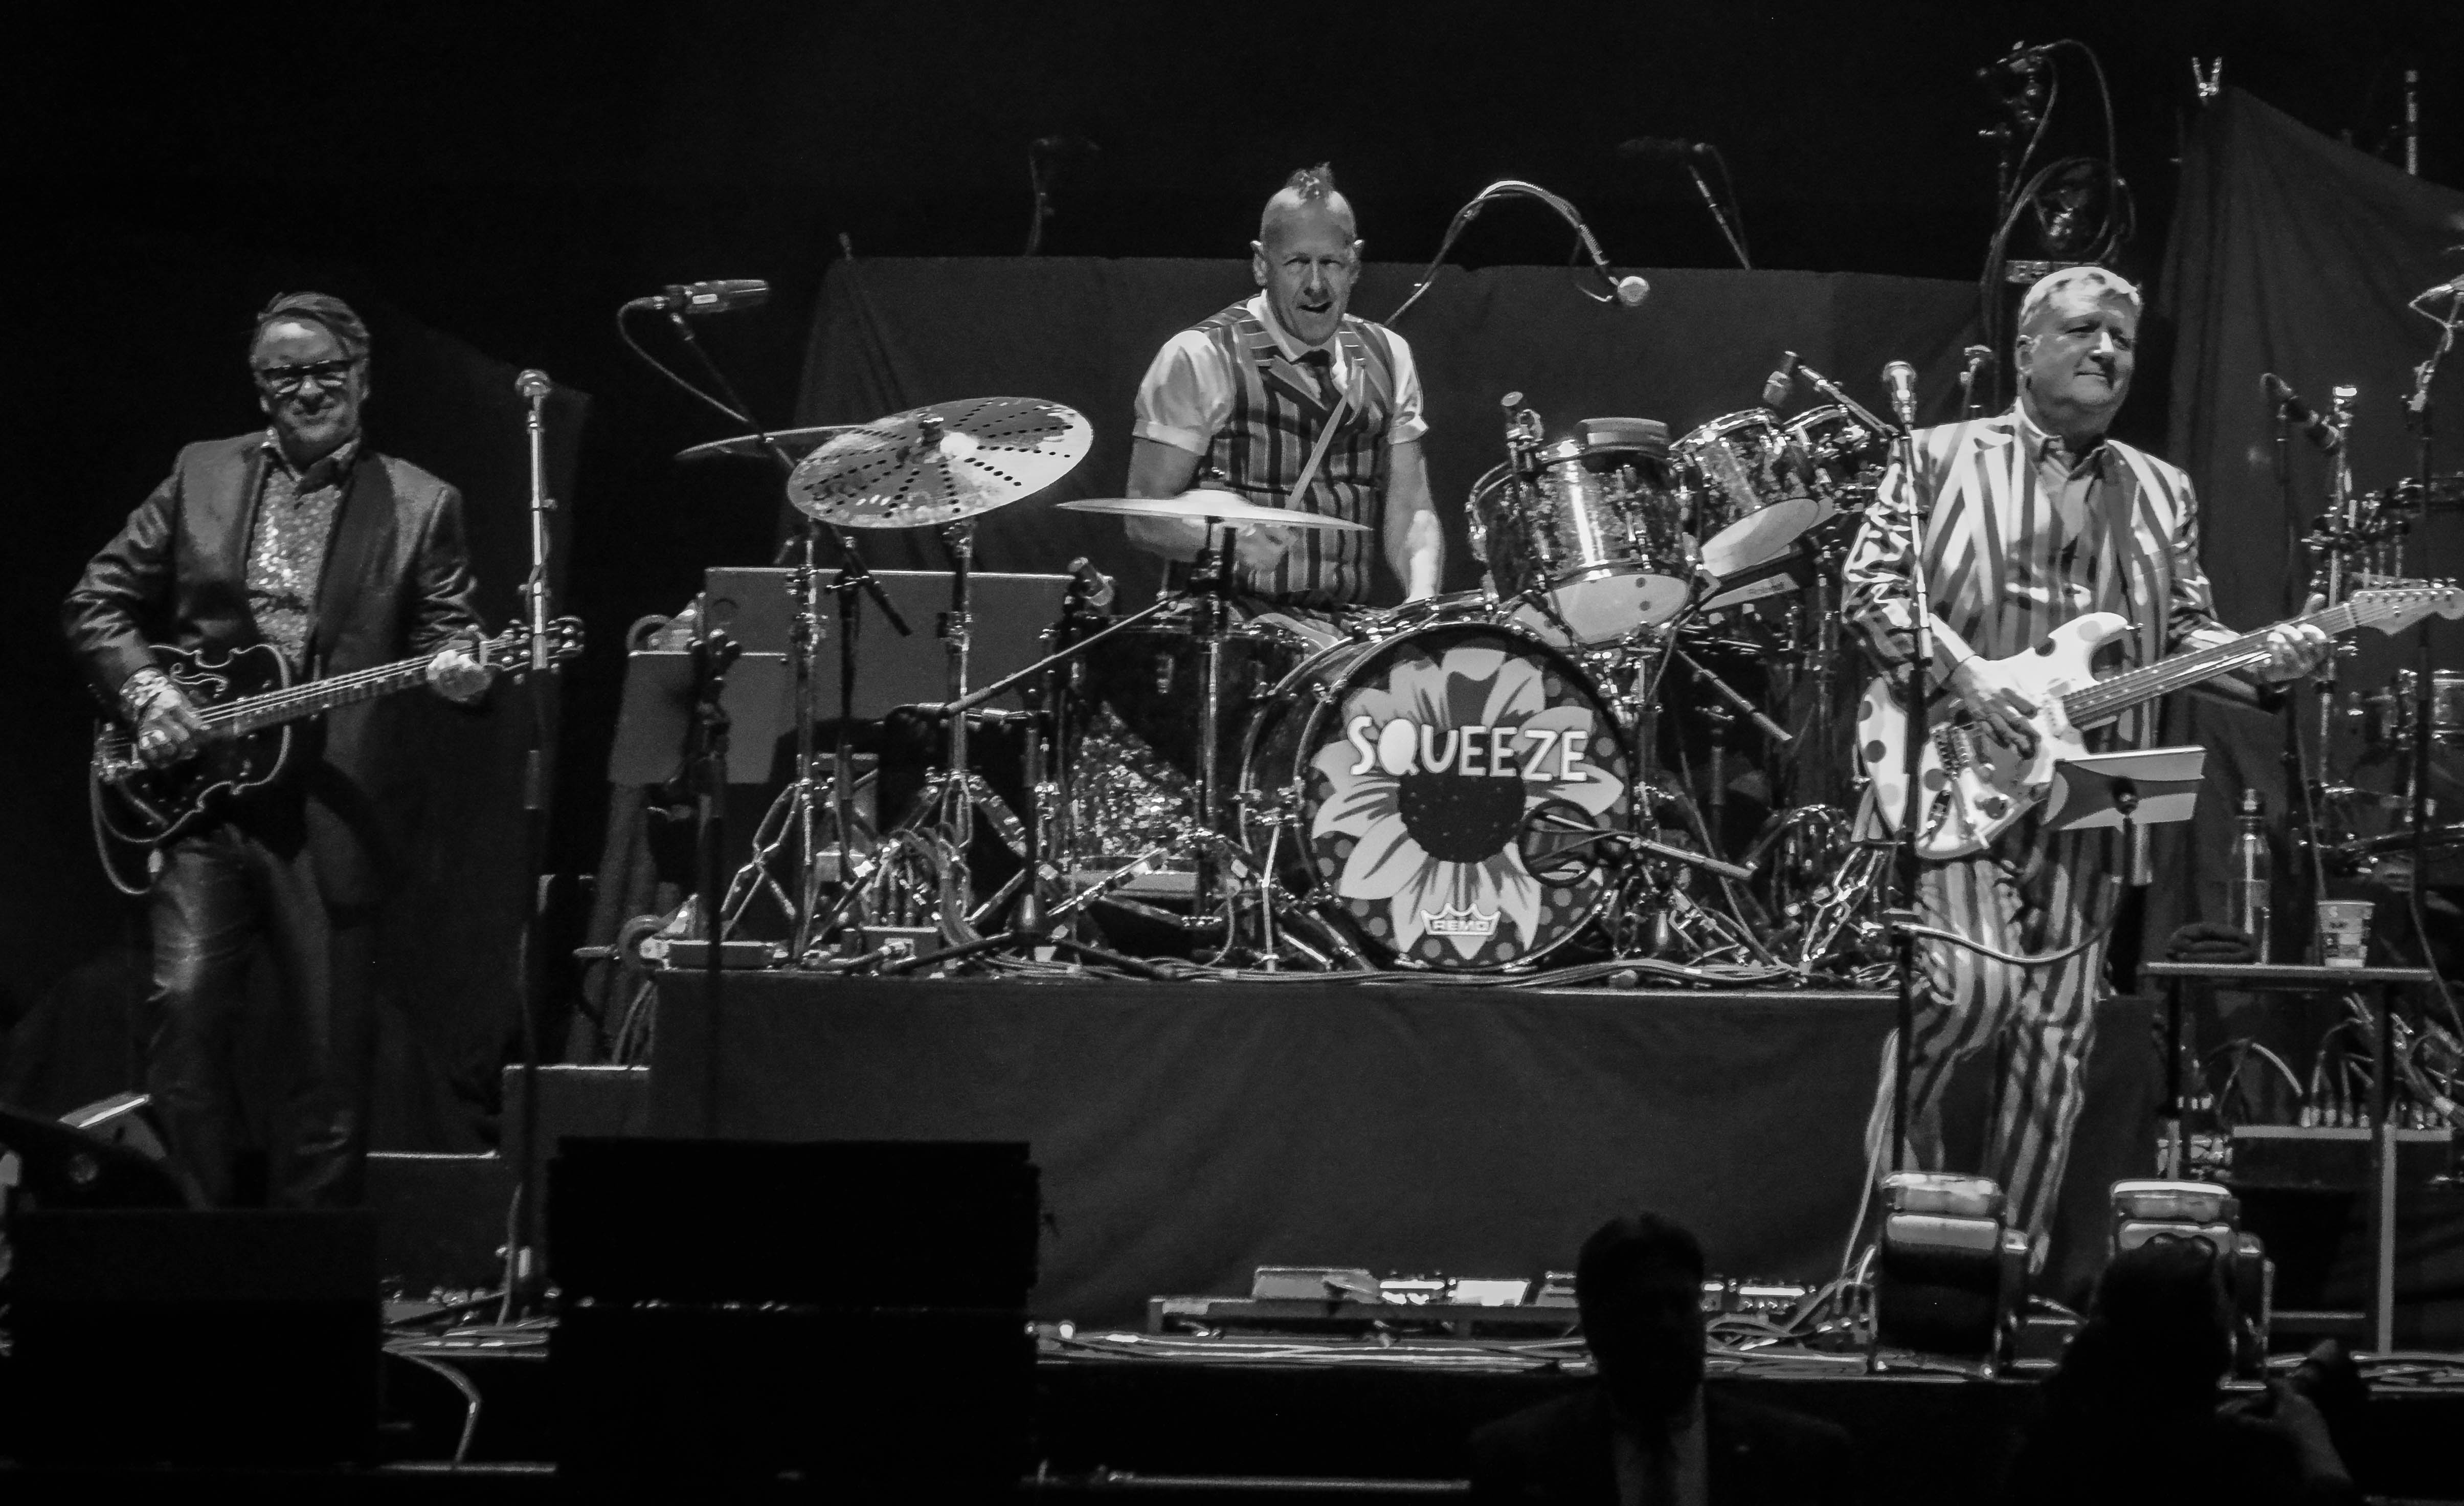 Squeeze at MSG on 2/28/20.